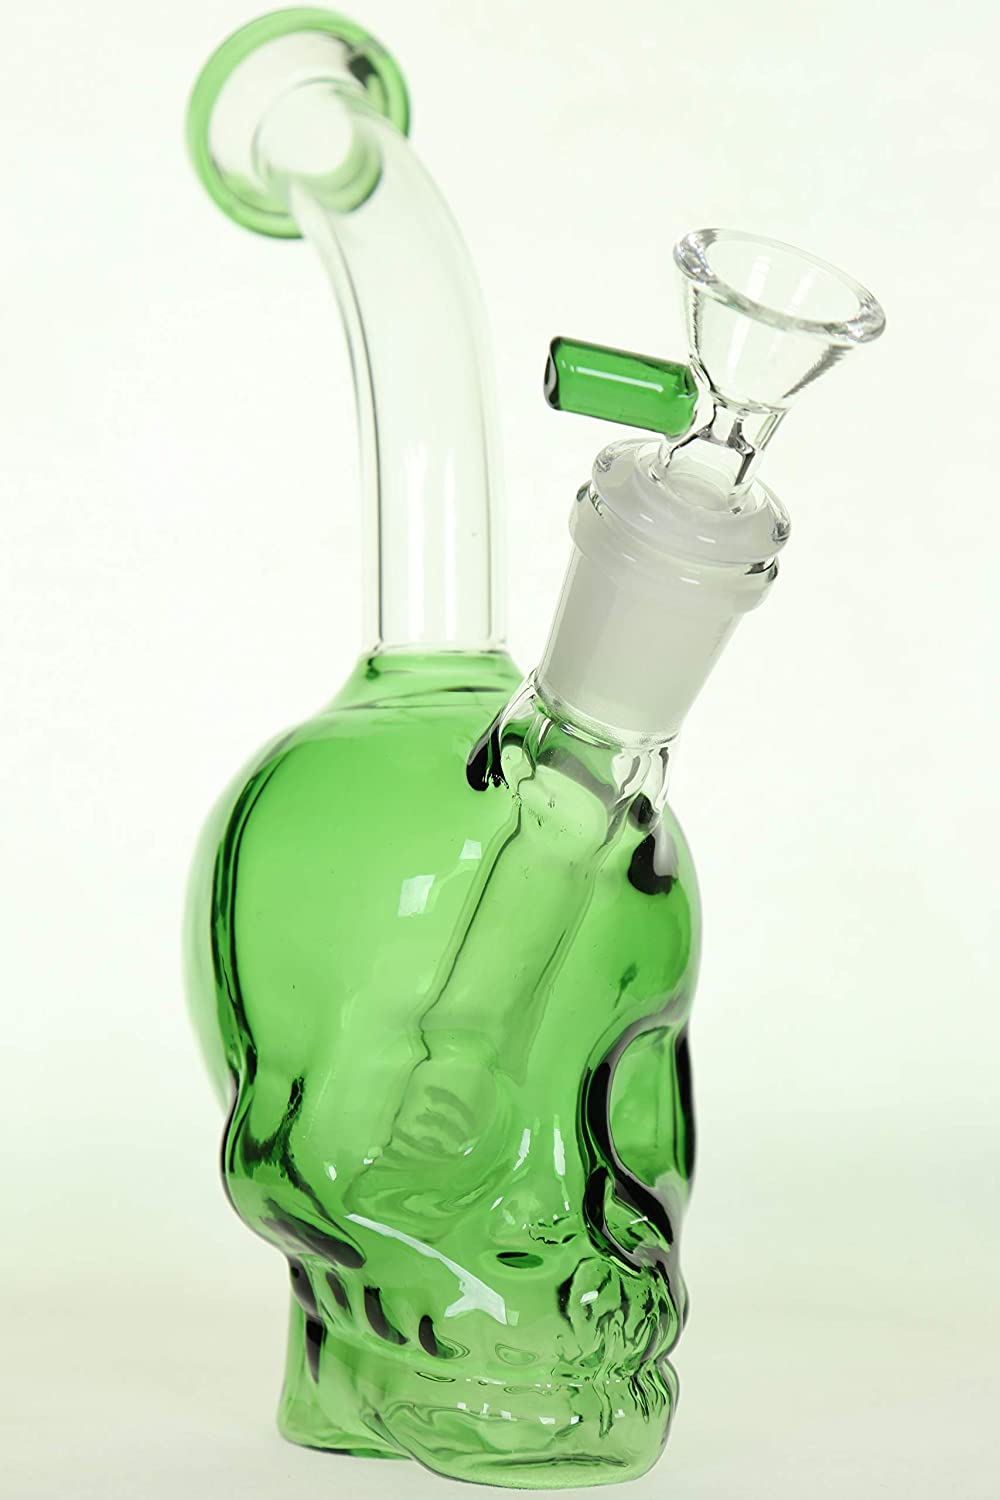 SmokeWeapon Green Skull Head Glass Art Vase Downstem Perc Green 14 MM Joint 8 Inches Height